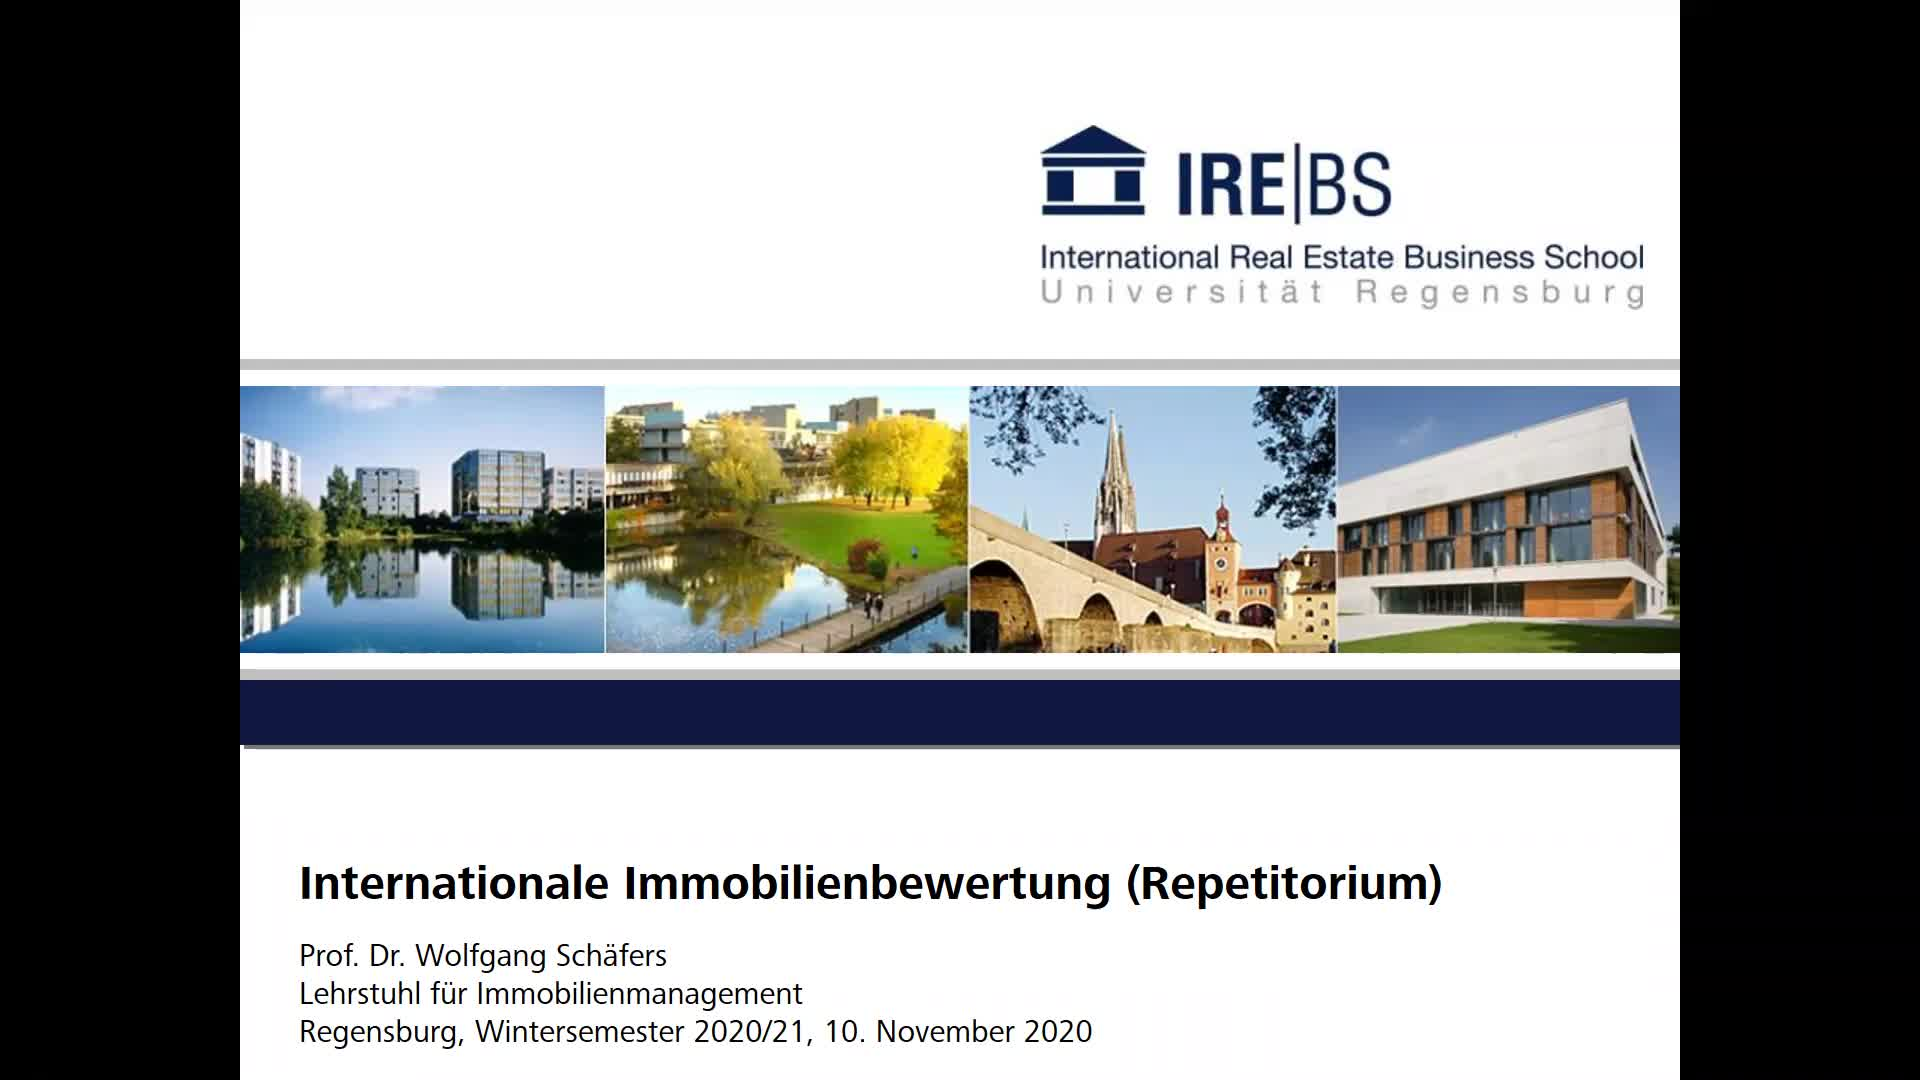 Internationale Immobilienbewertung (Repetitorium)